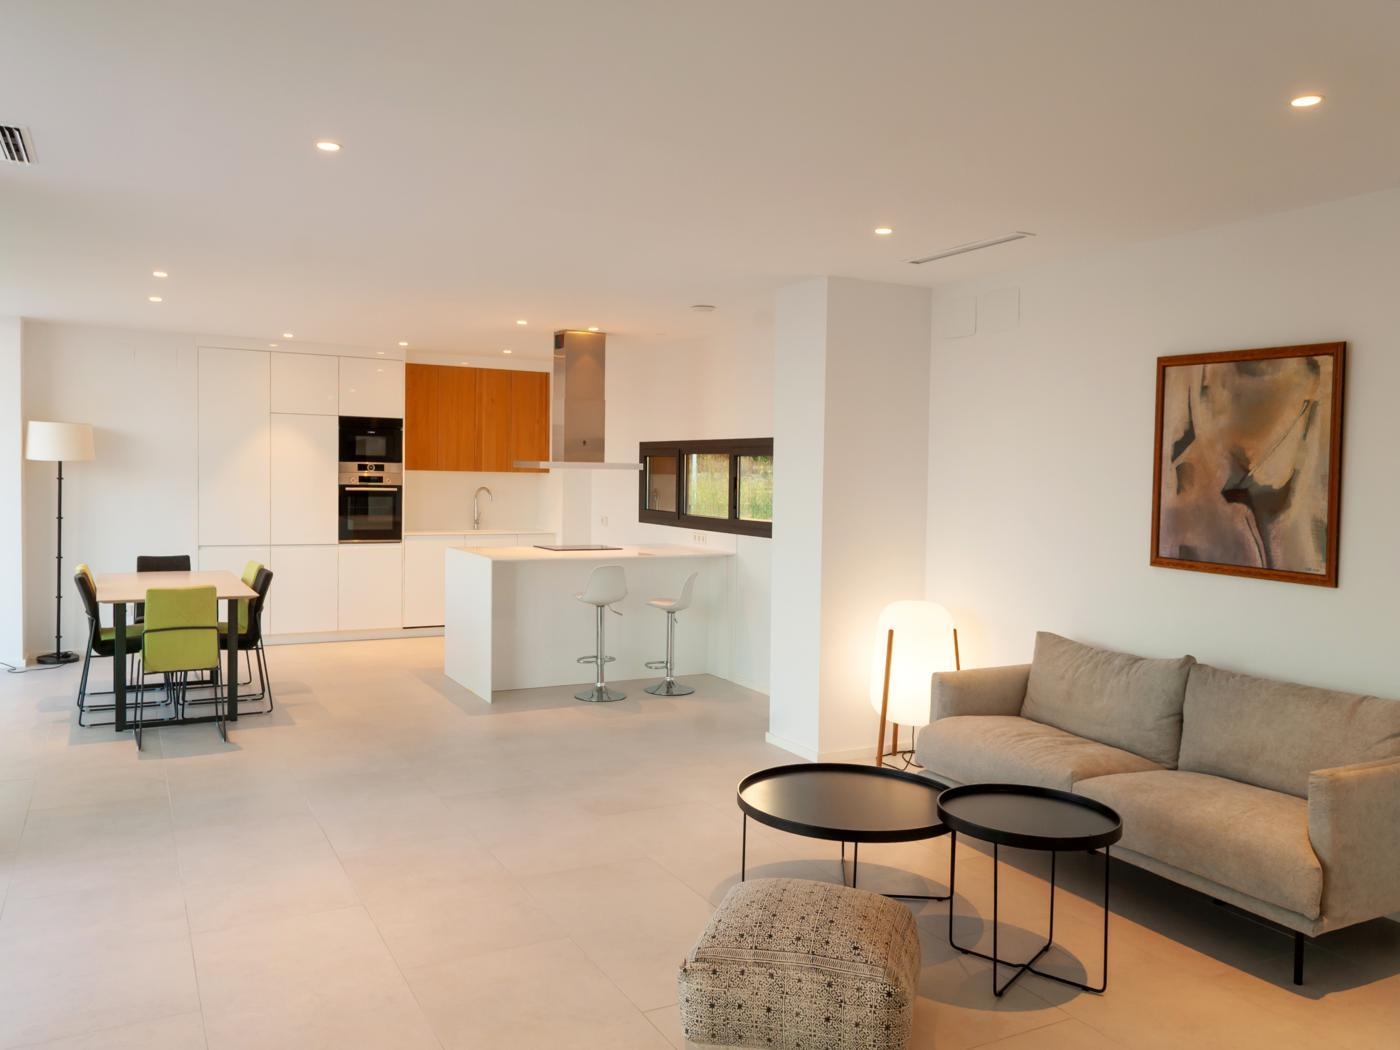 Photogallery - 8 - Exceptional homes in the Costa Blanca. Unparalleled Service. Exceptional properties in the Costa Blanca